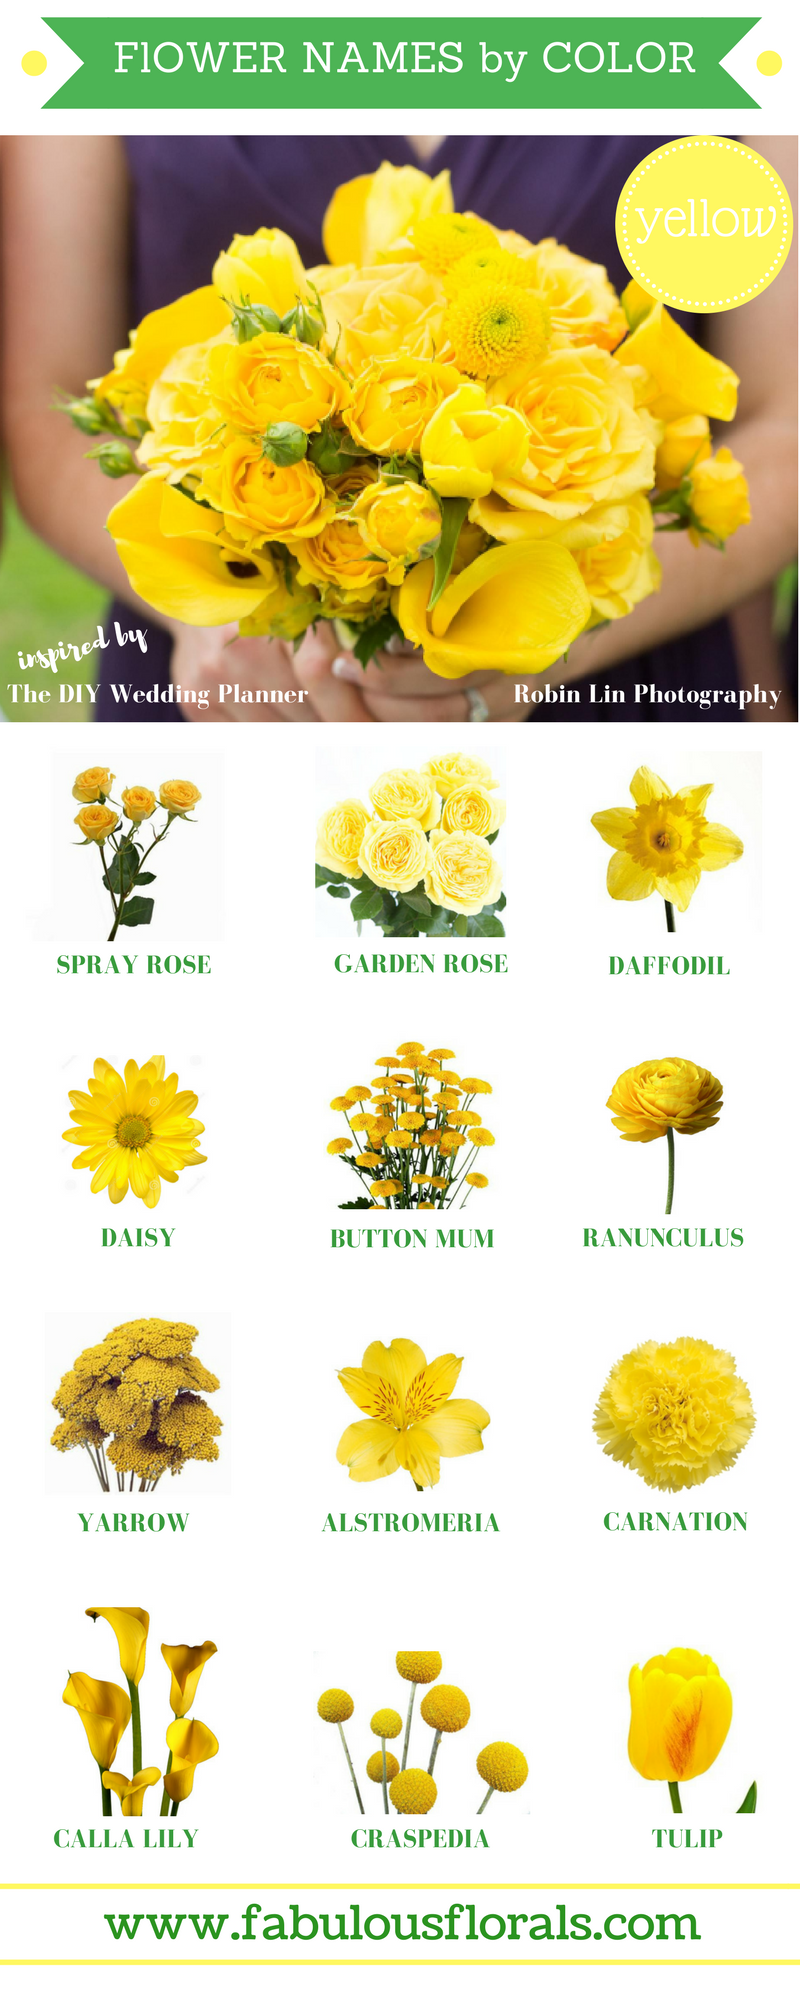 Yellow Flowers Commonly Evoke Feelings Of Happiness And Cheer Which Is Exactly What They Symbolize Yellow Wedding Flowers Yellow Flowers Names Yellow Flowers